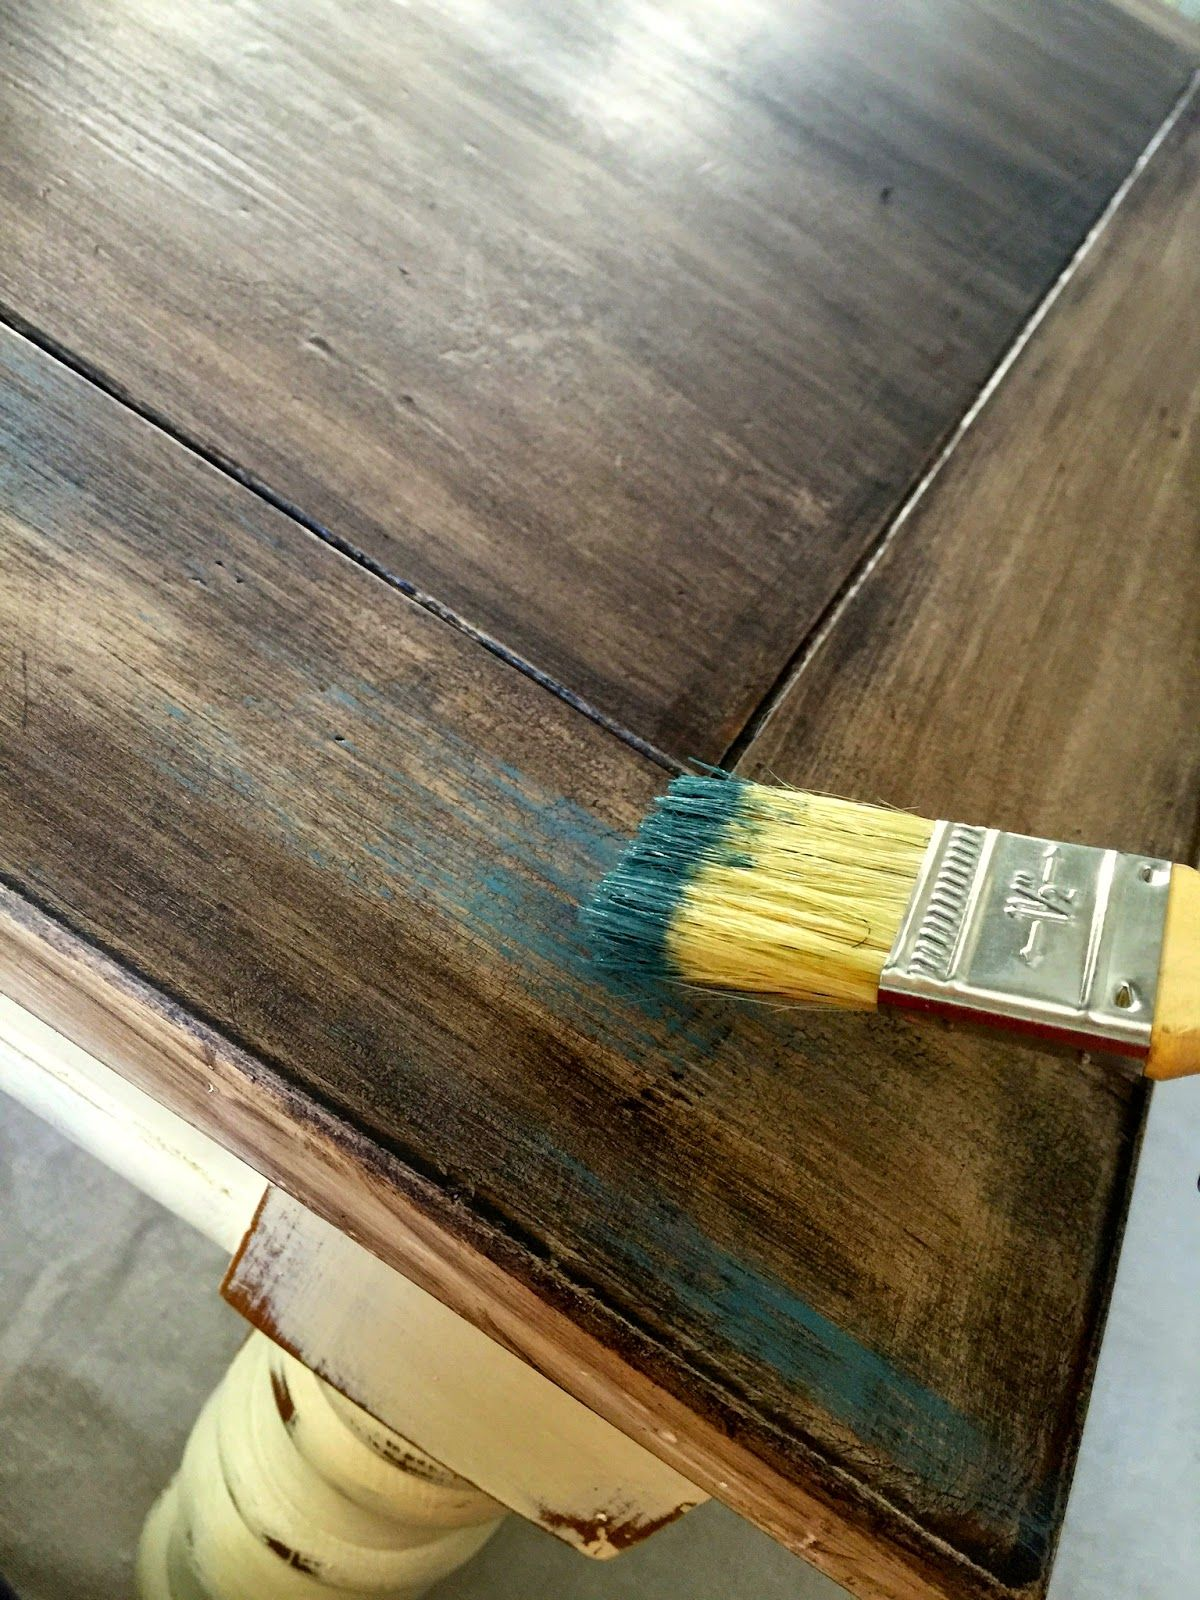 Dry Brush Over Stain Doodles Stitches Paint Furniture Furniture Projects Dry Brushing